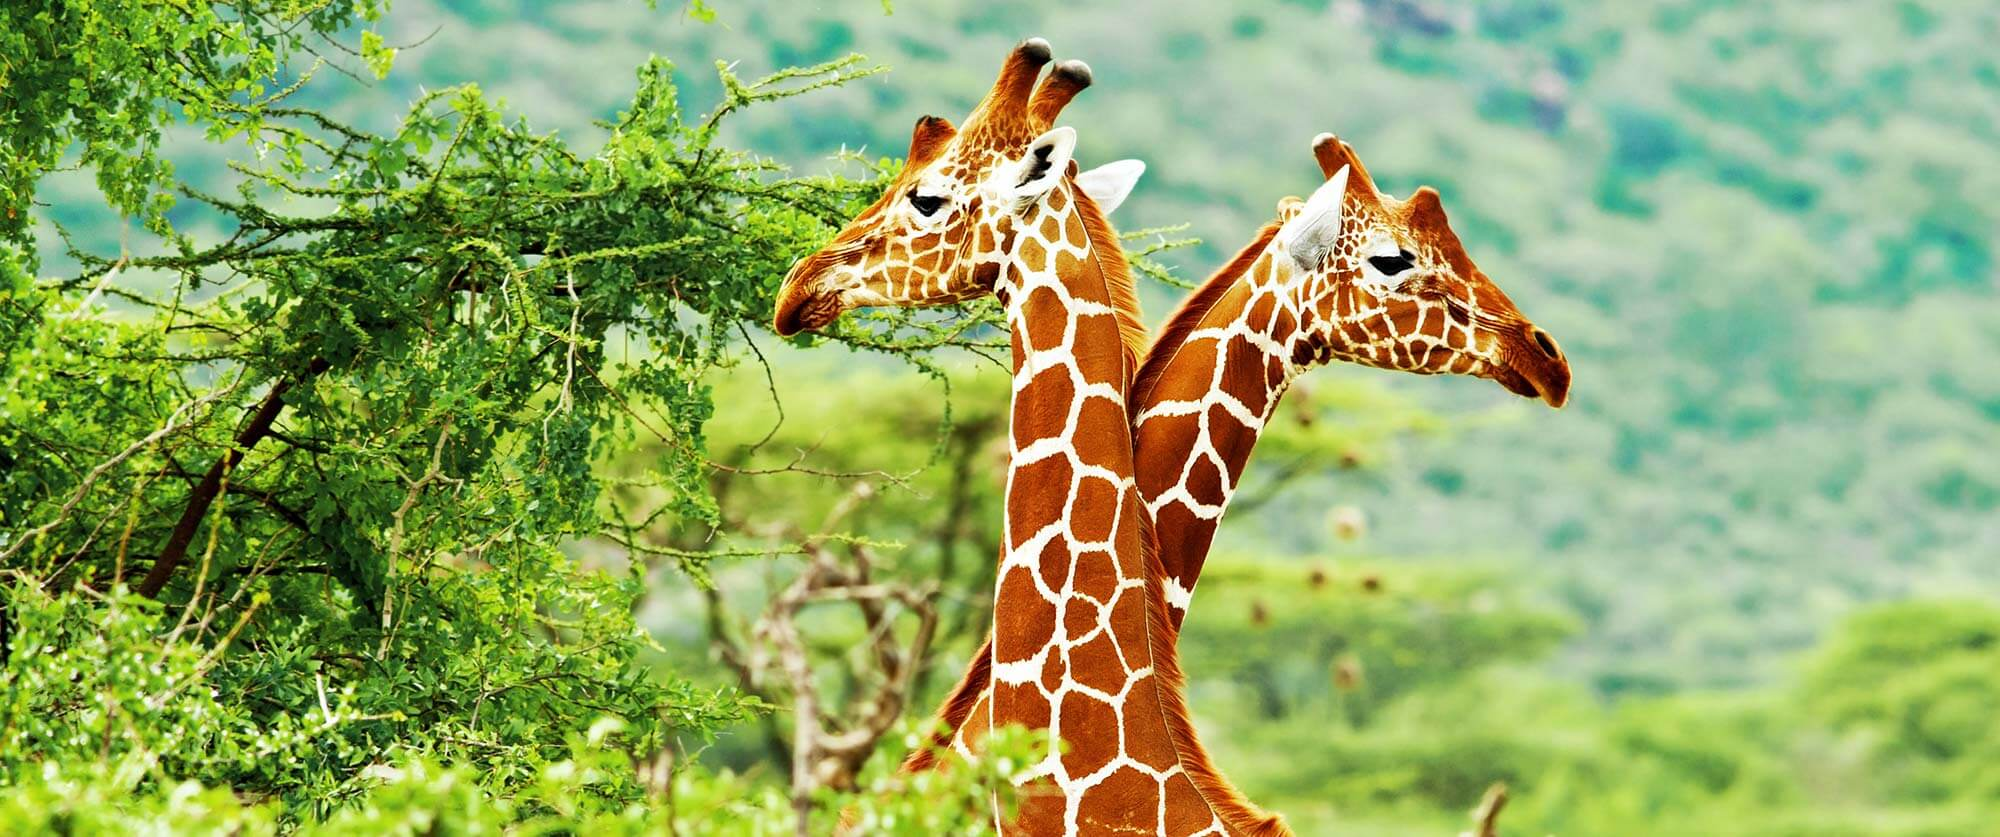 South Africa Kruger Safari - Sabi Sands Safari - Giraffes - South Africa Honeymoon: Luxury Highlights Tour